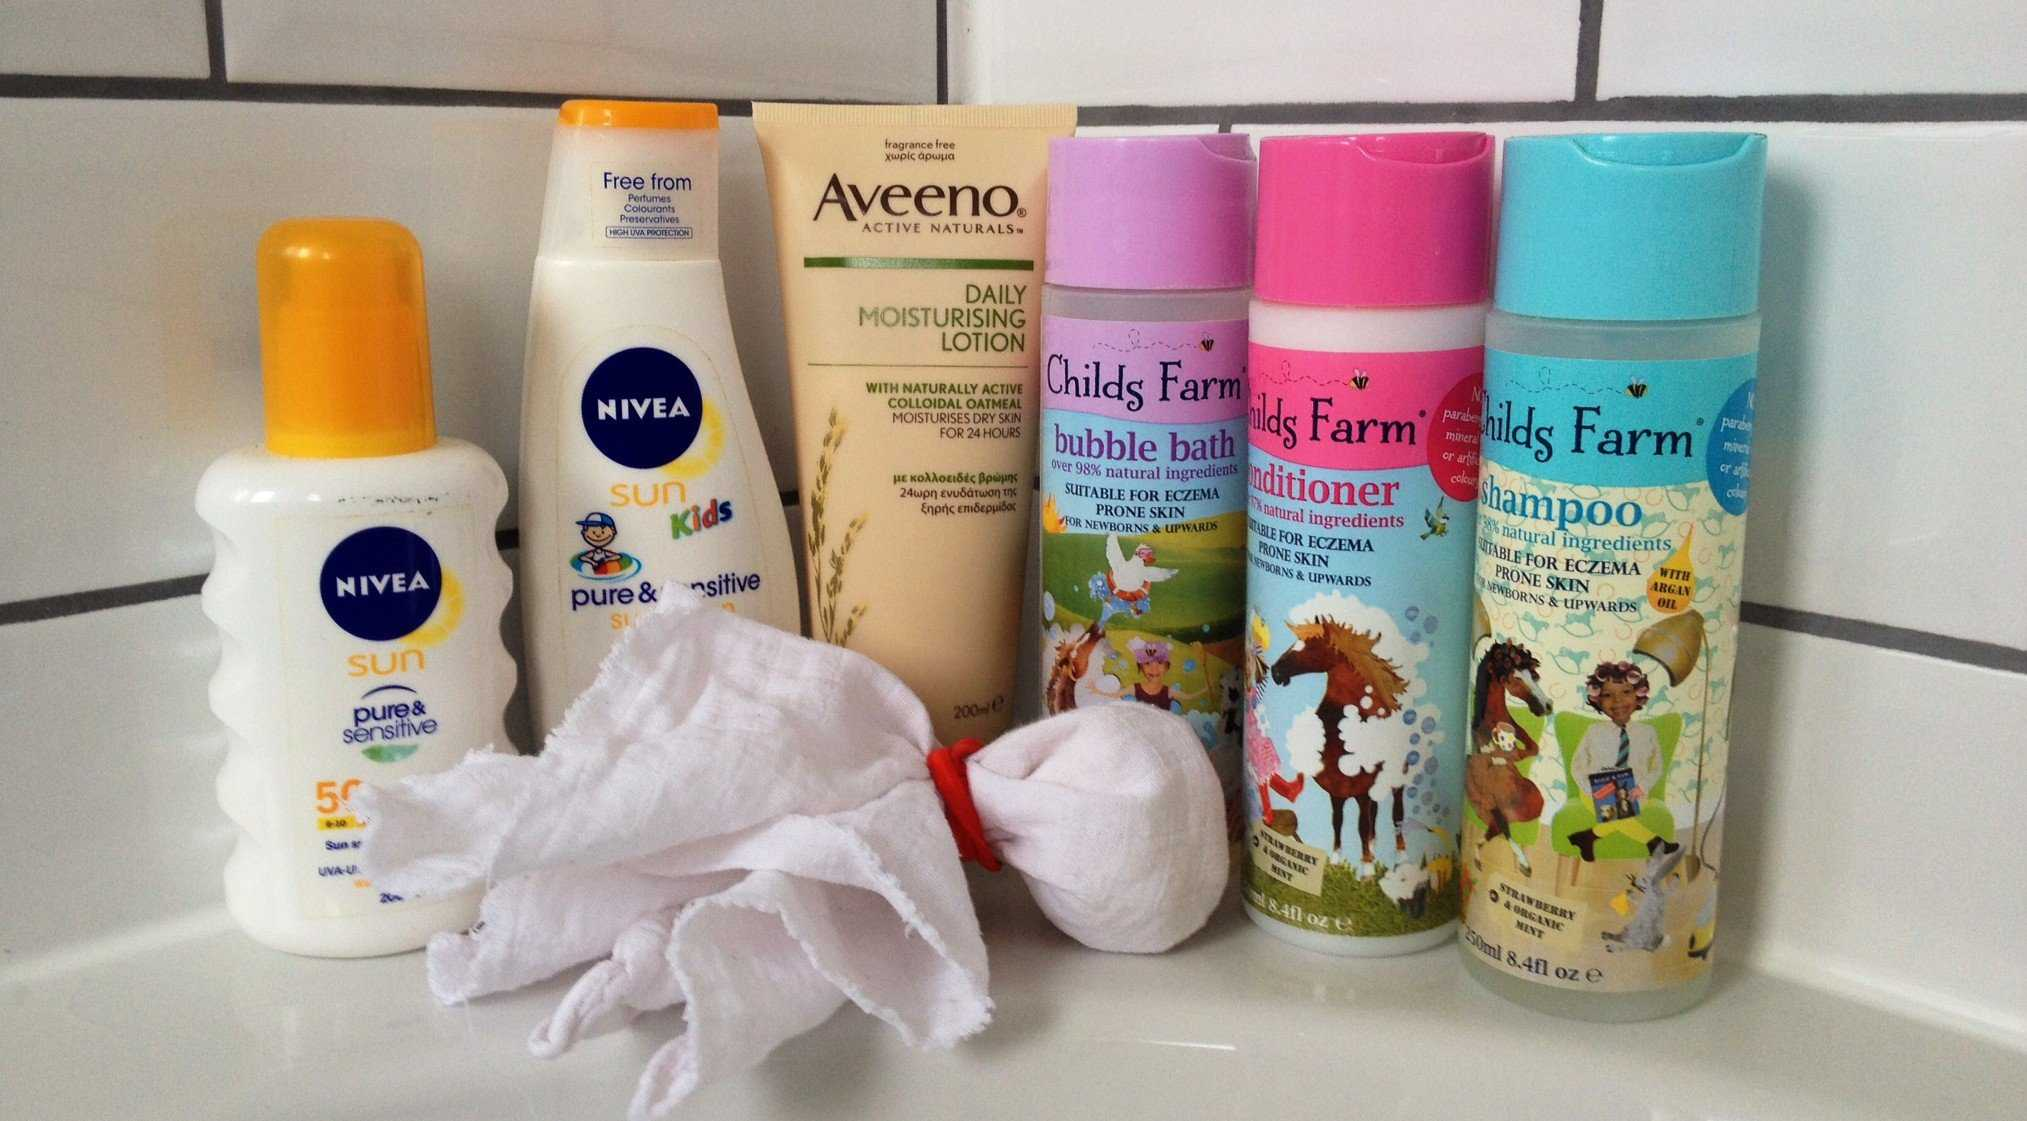 Our Battle With Eczema: Tips To Try - PinksCharming